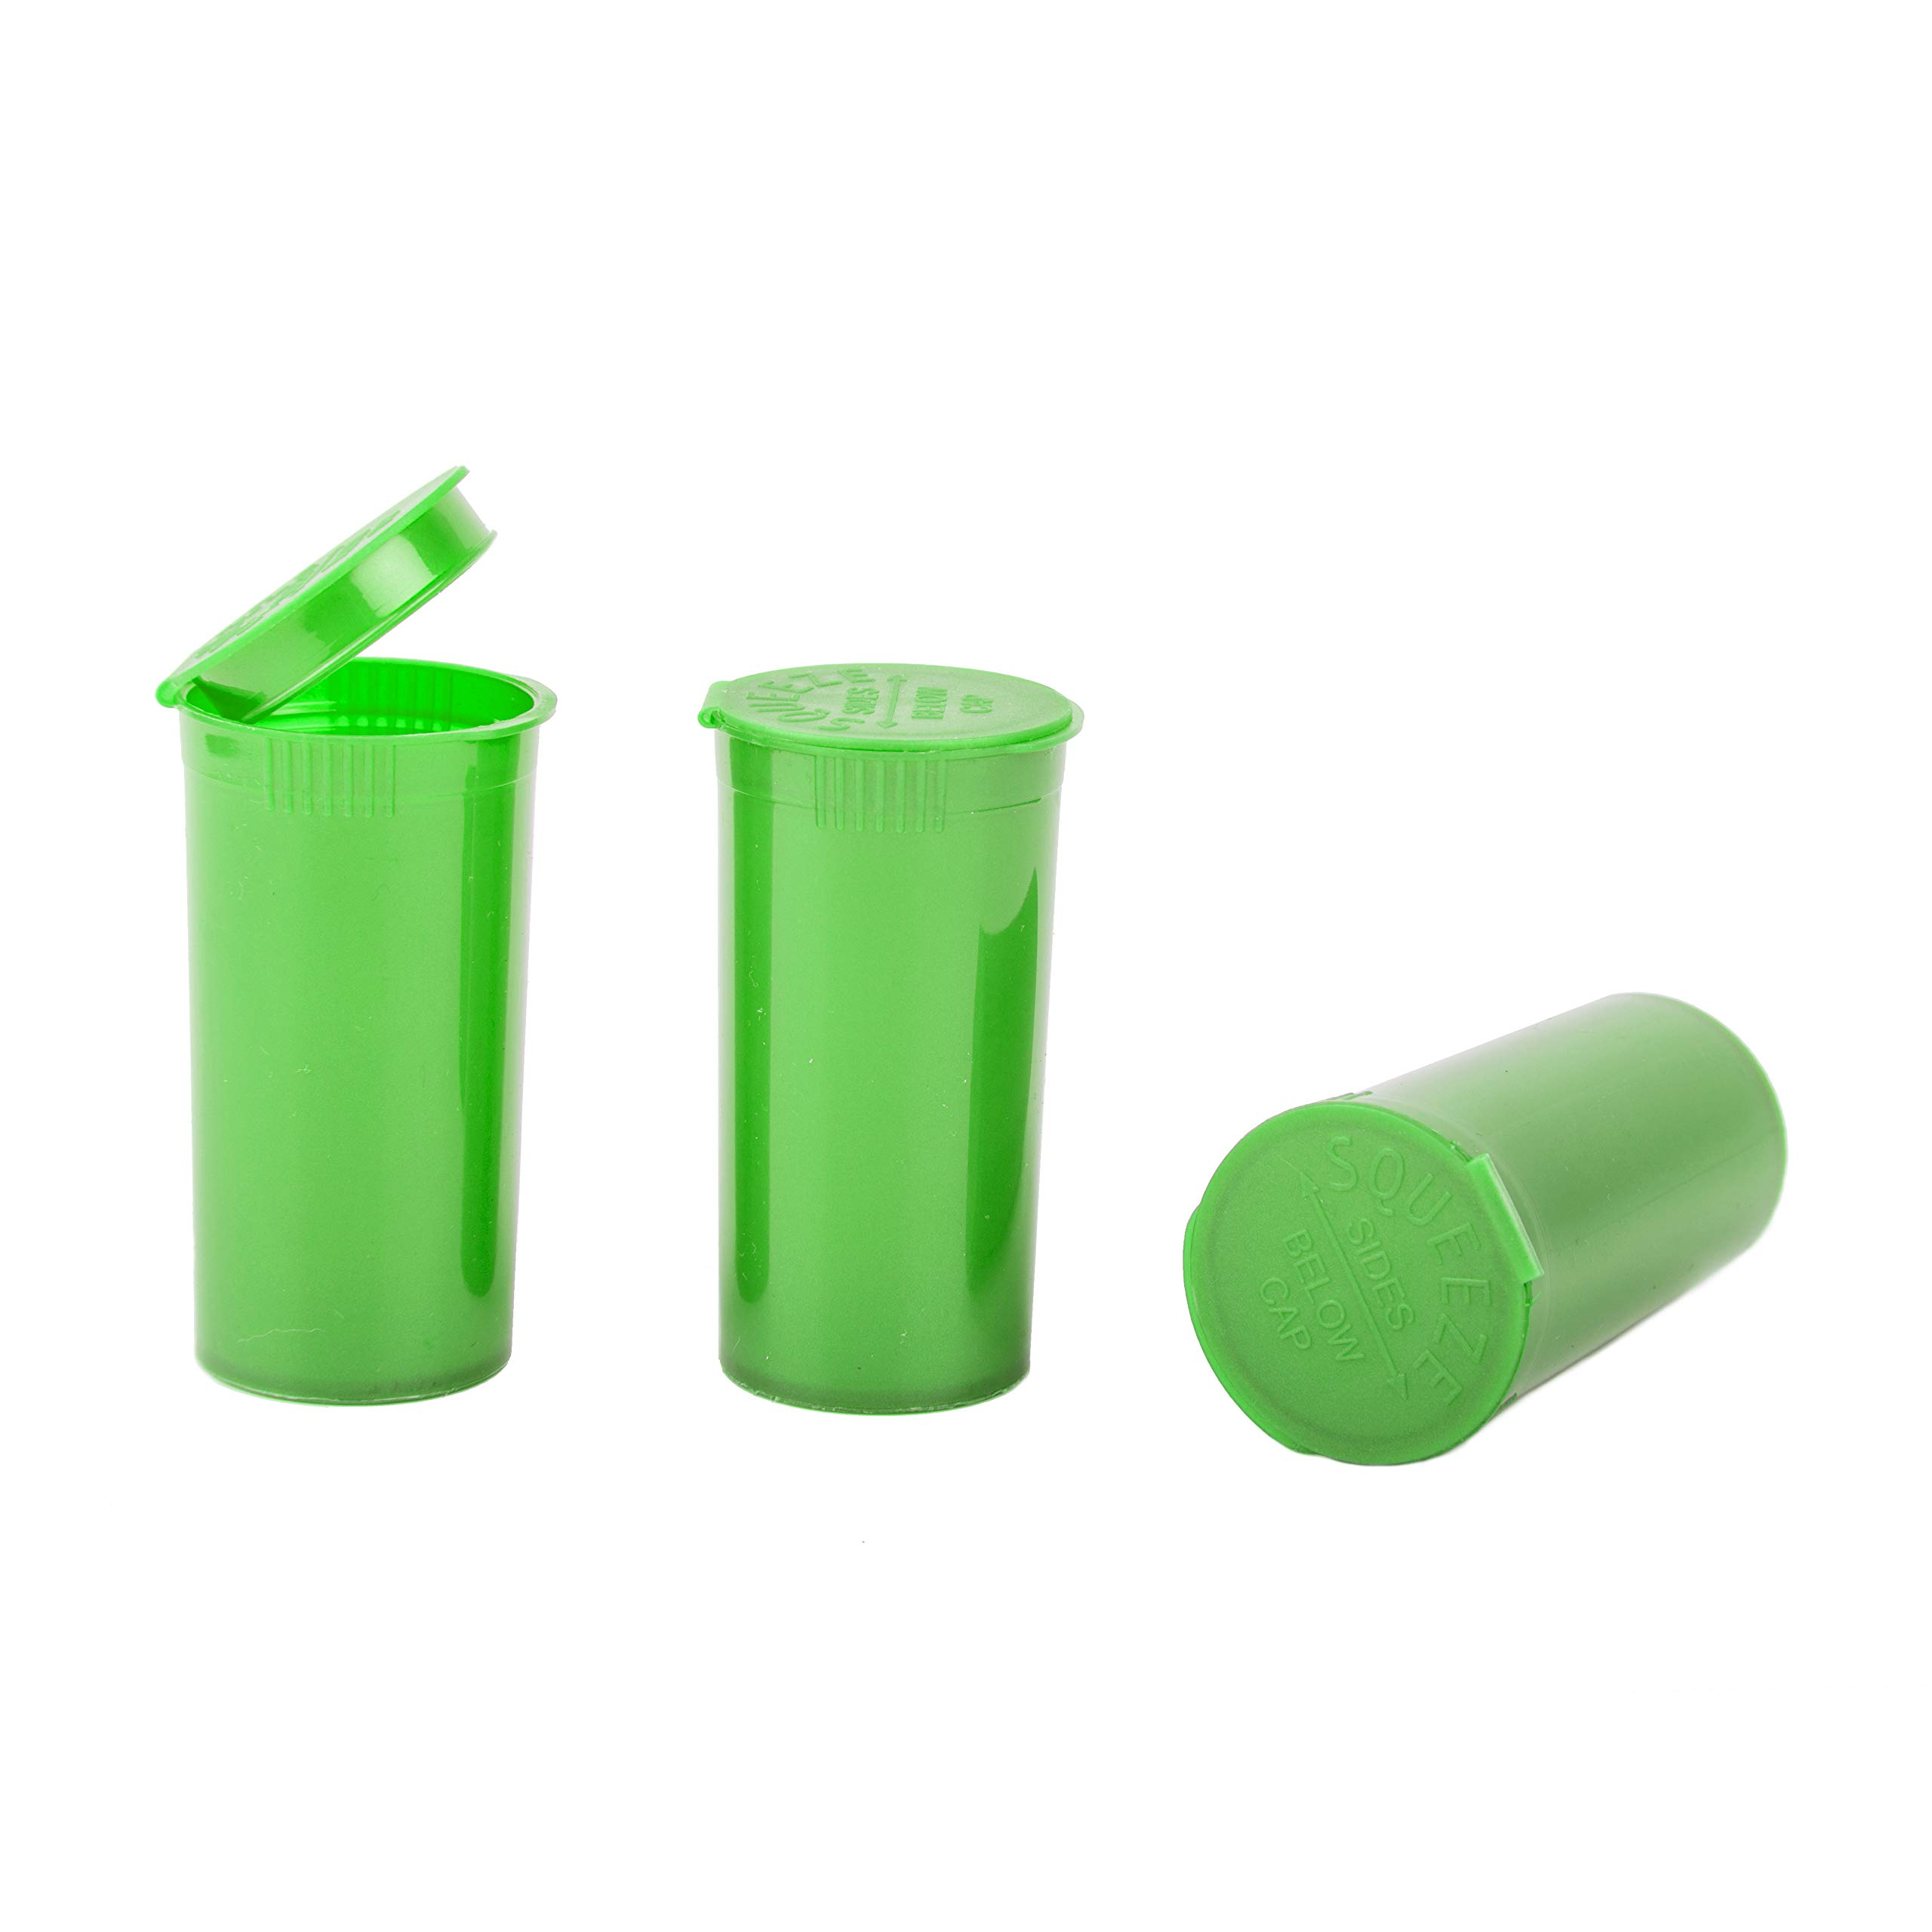 Loud Lock - Pop Top Vial Container Bottles - 13 Dram Size - 315 Count Case (Green)